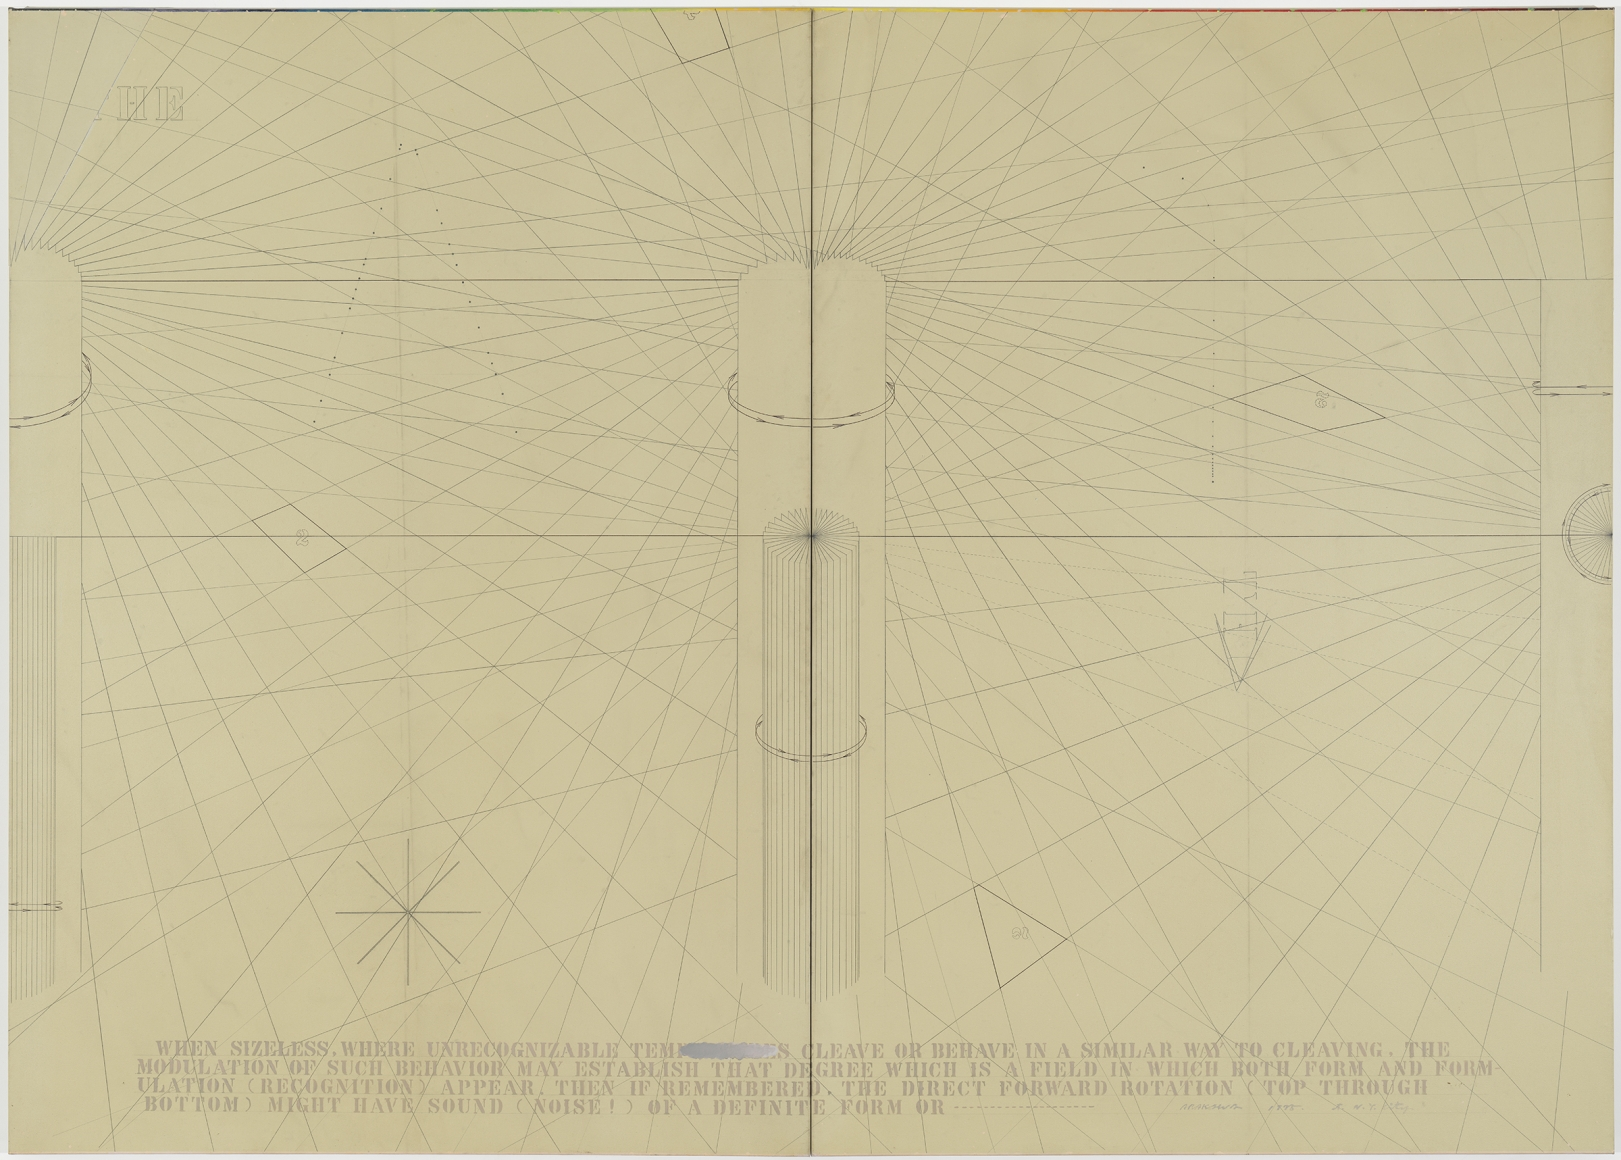 Arakawa, Degrees of Return, 1975